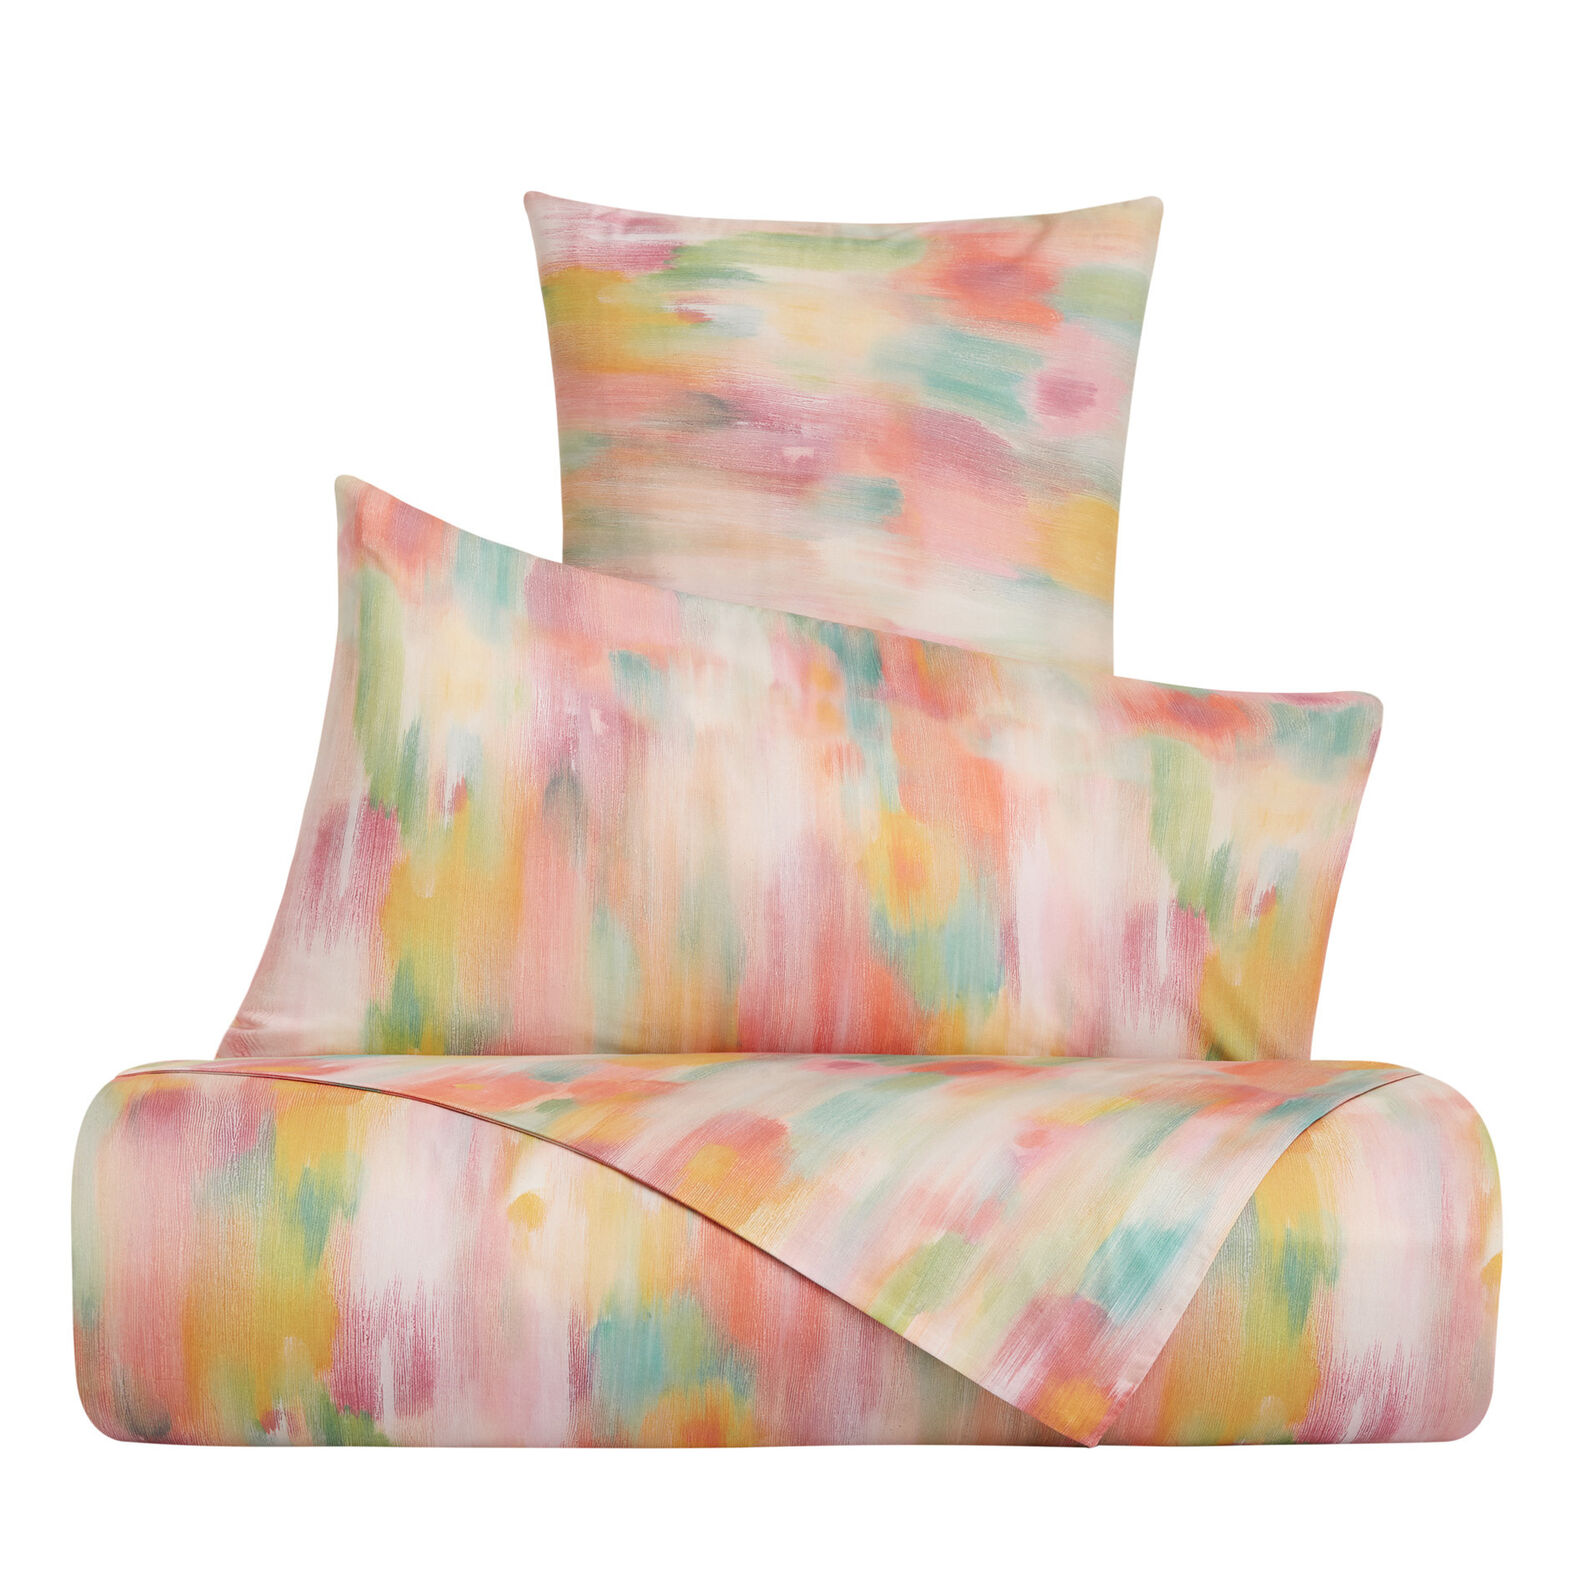 Duvet cover set in cotton percale with brush strokes pattern